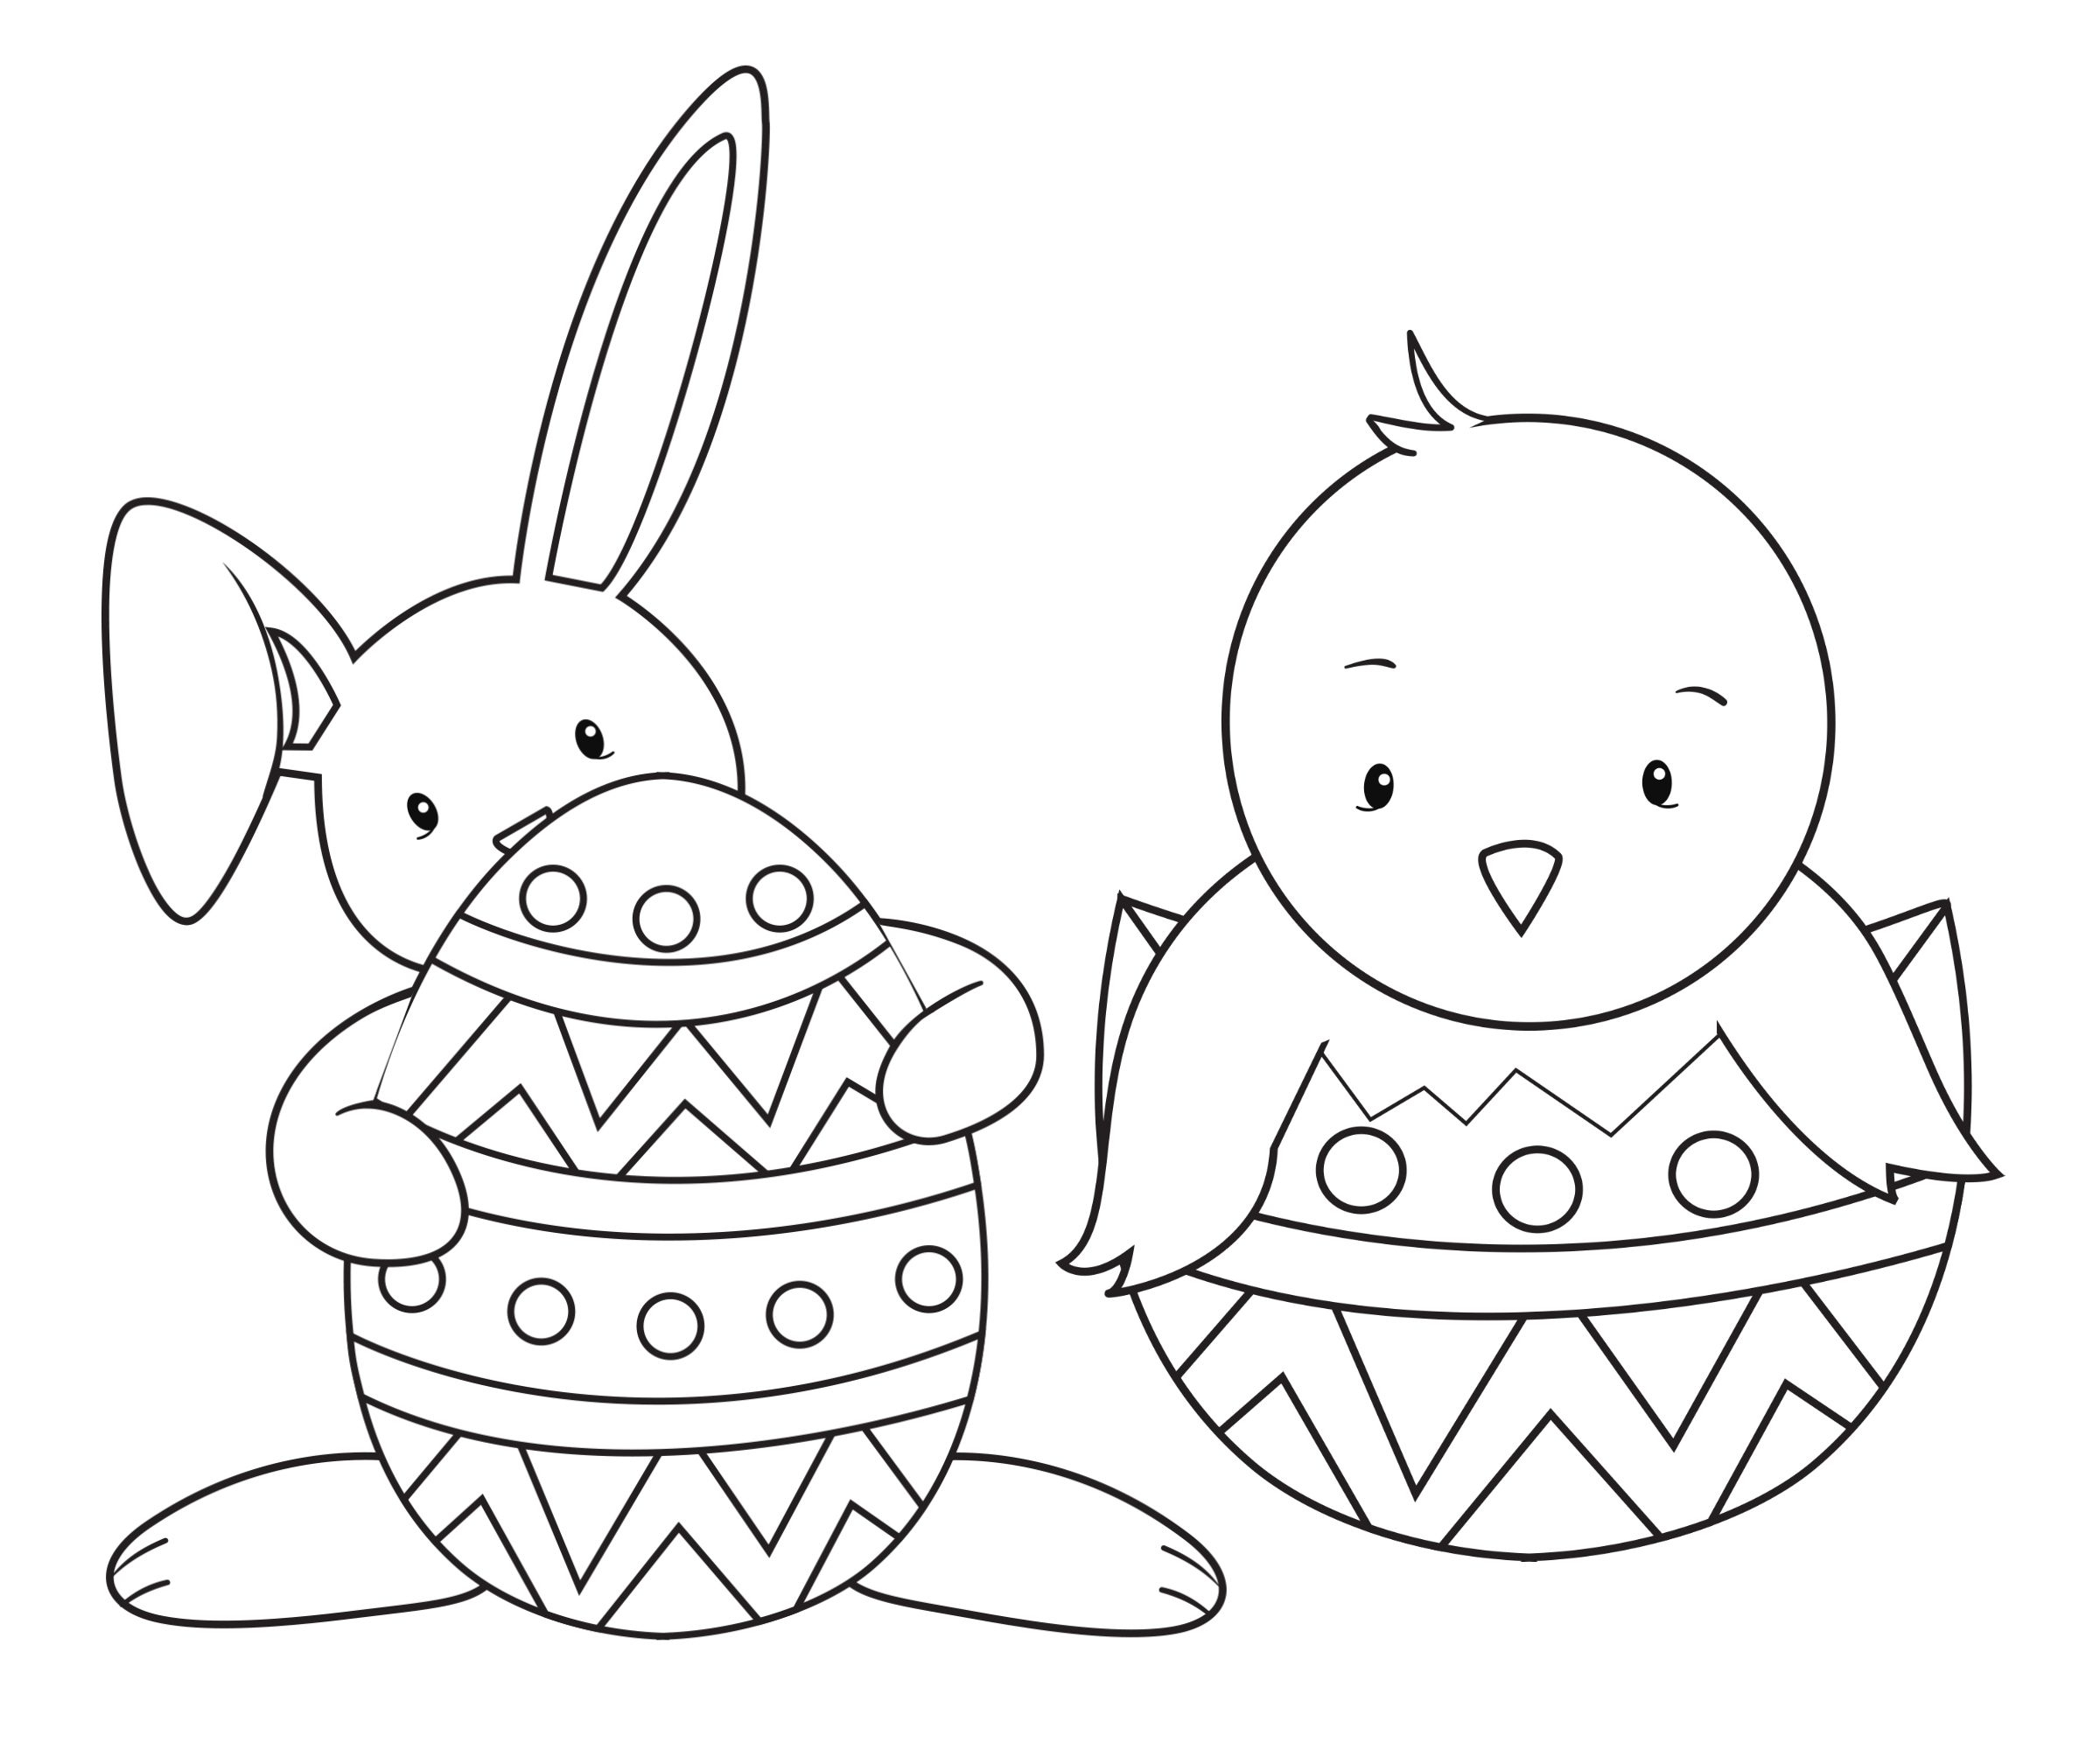 Easter Coloring Pages for Kids to Print Of Delighted Bunny Print Out Coloring Pages Easter for Kids Crazy Printable